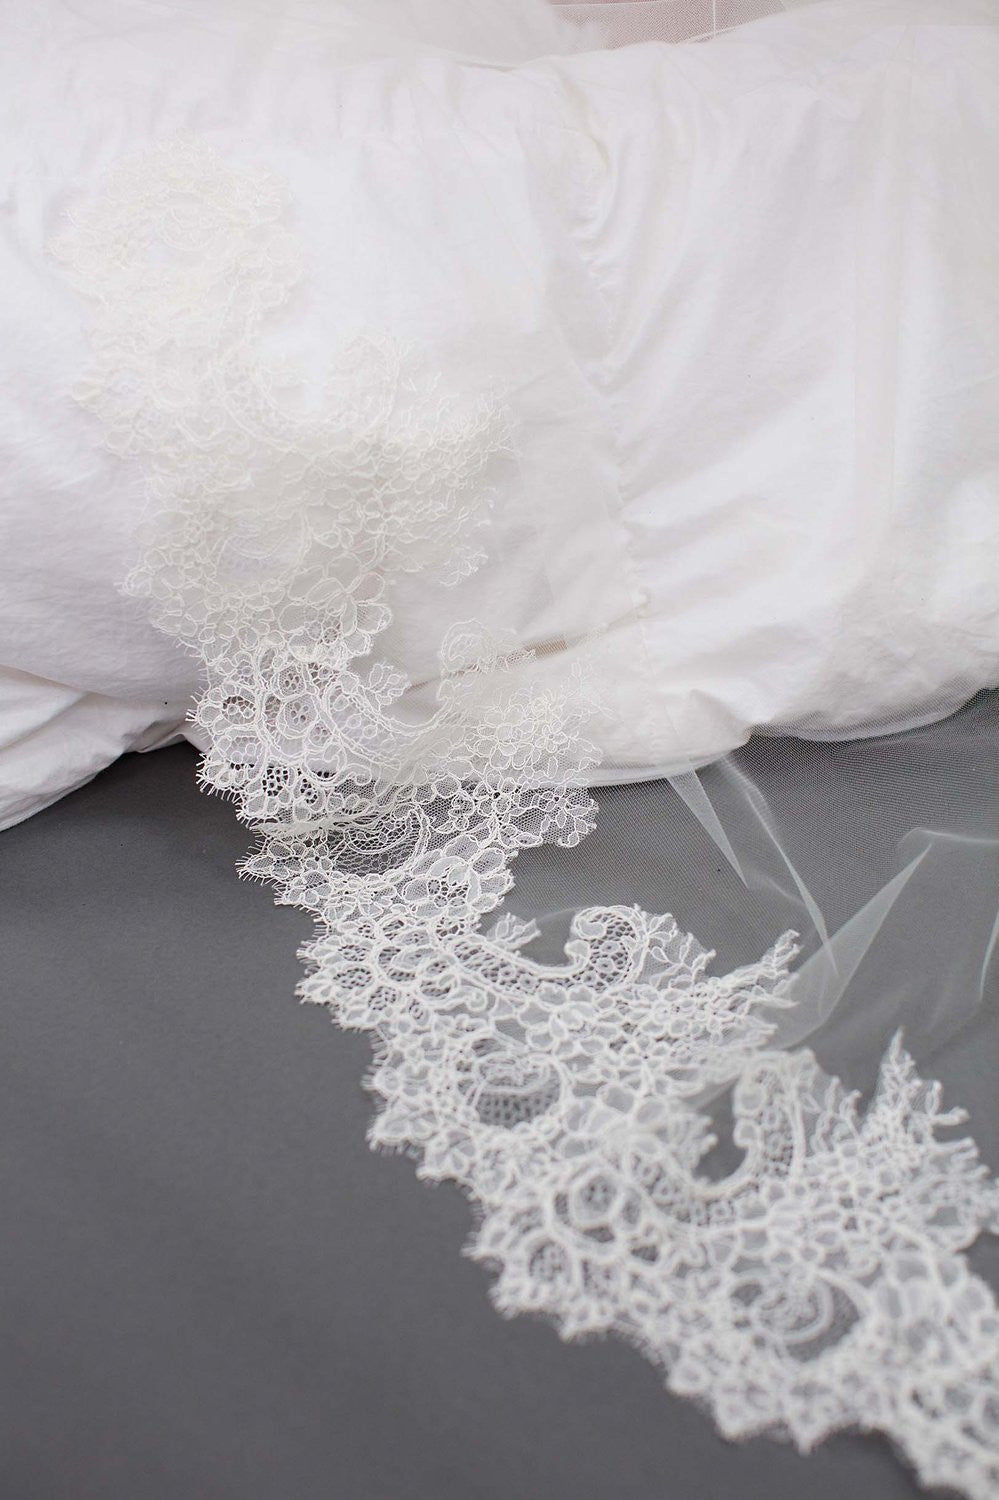 AMANDA DELICATE AND SHEER ALENCON LACE VEIL IN IVORY - STYLE V1702